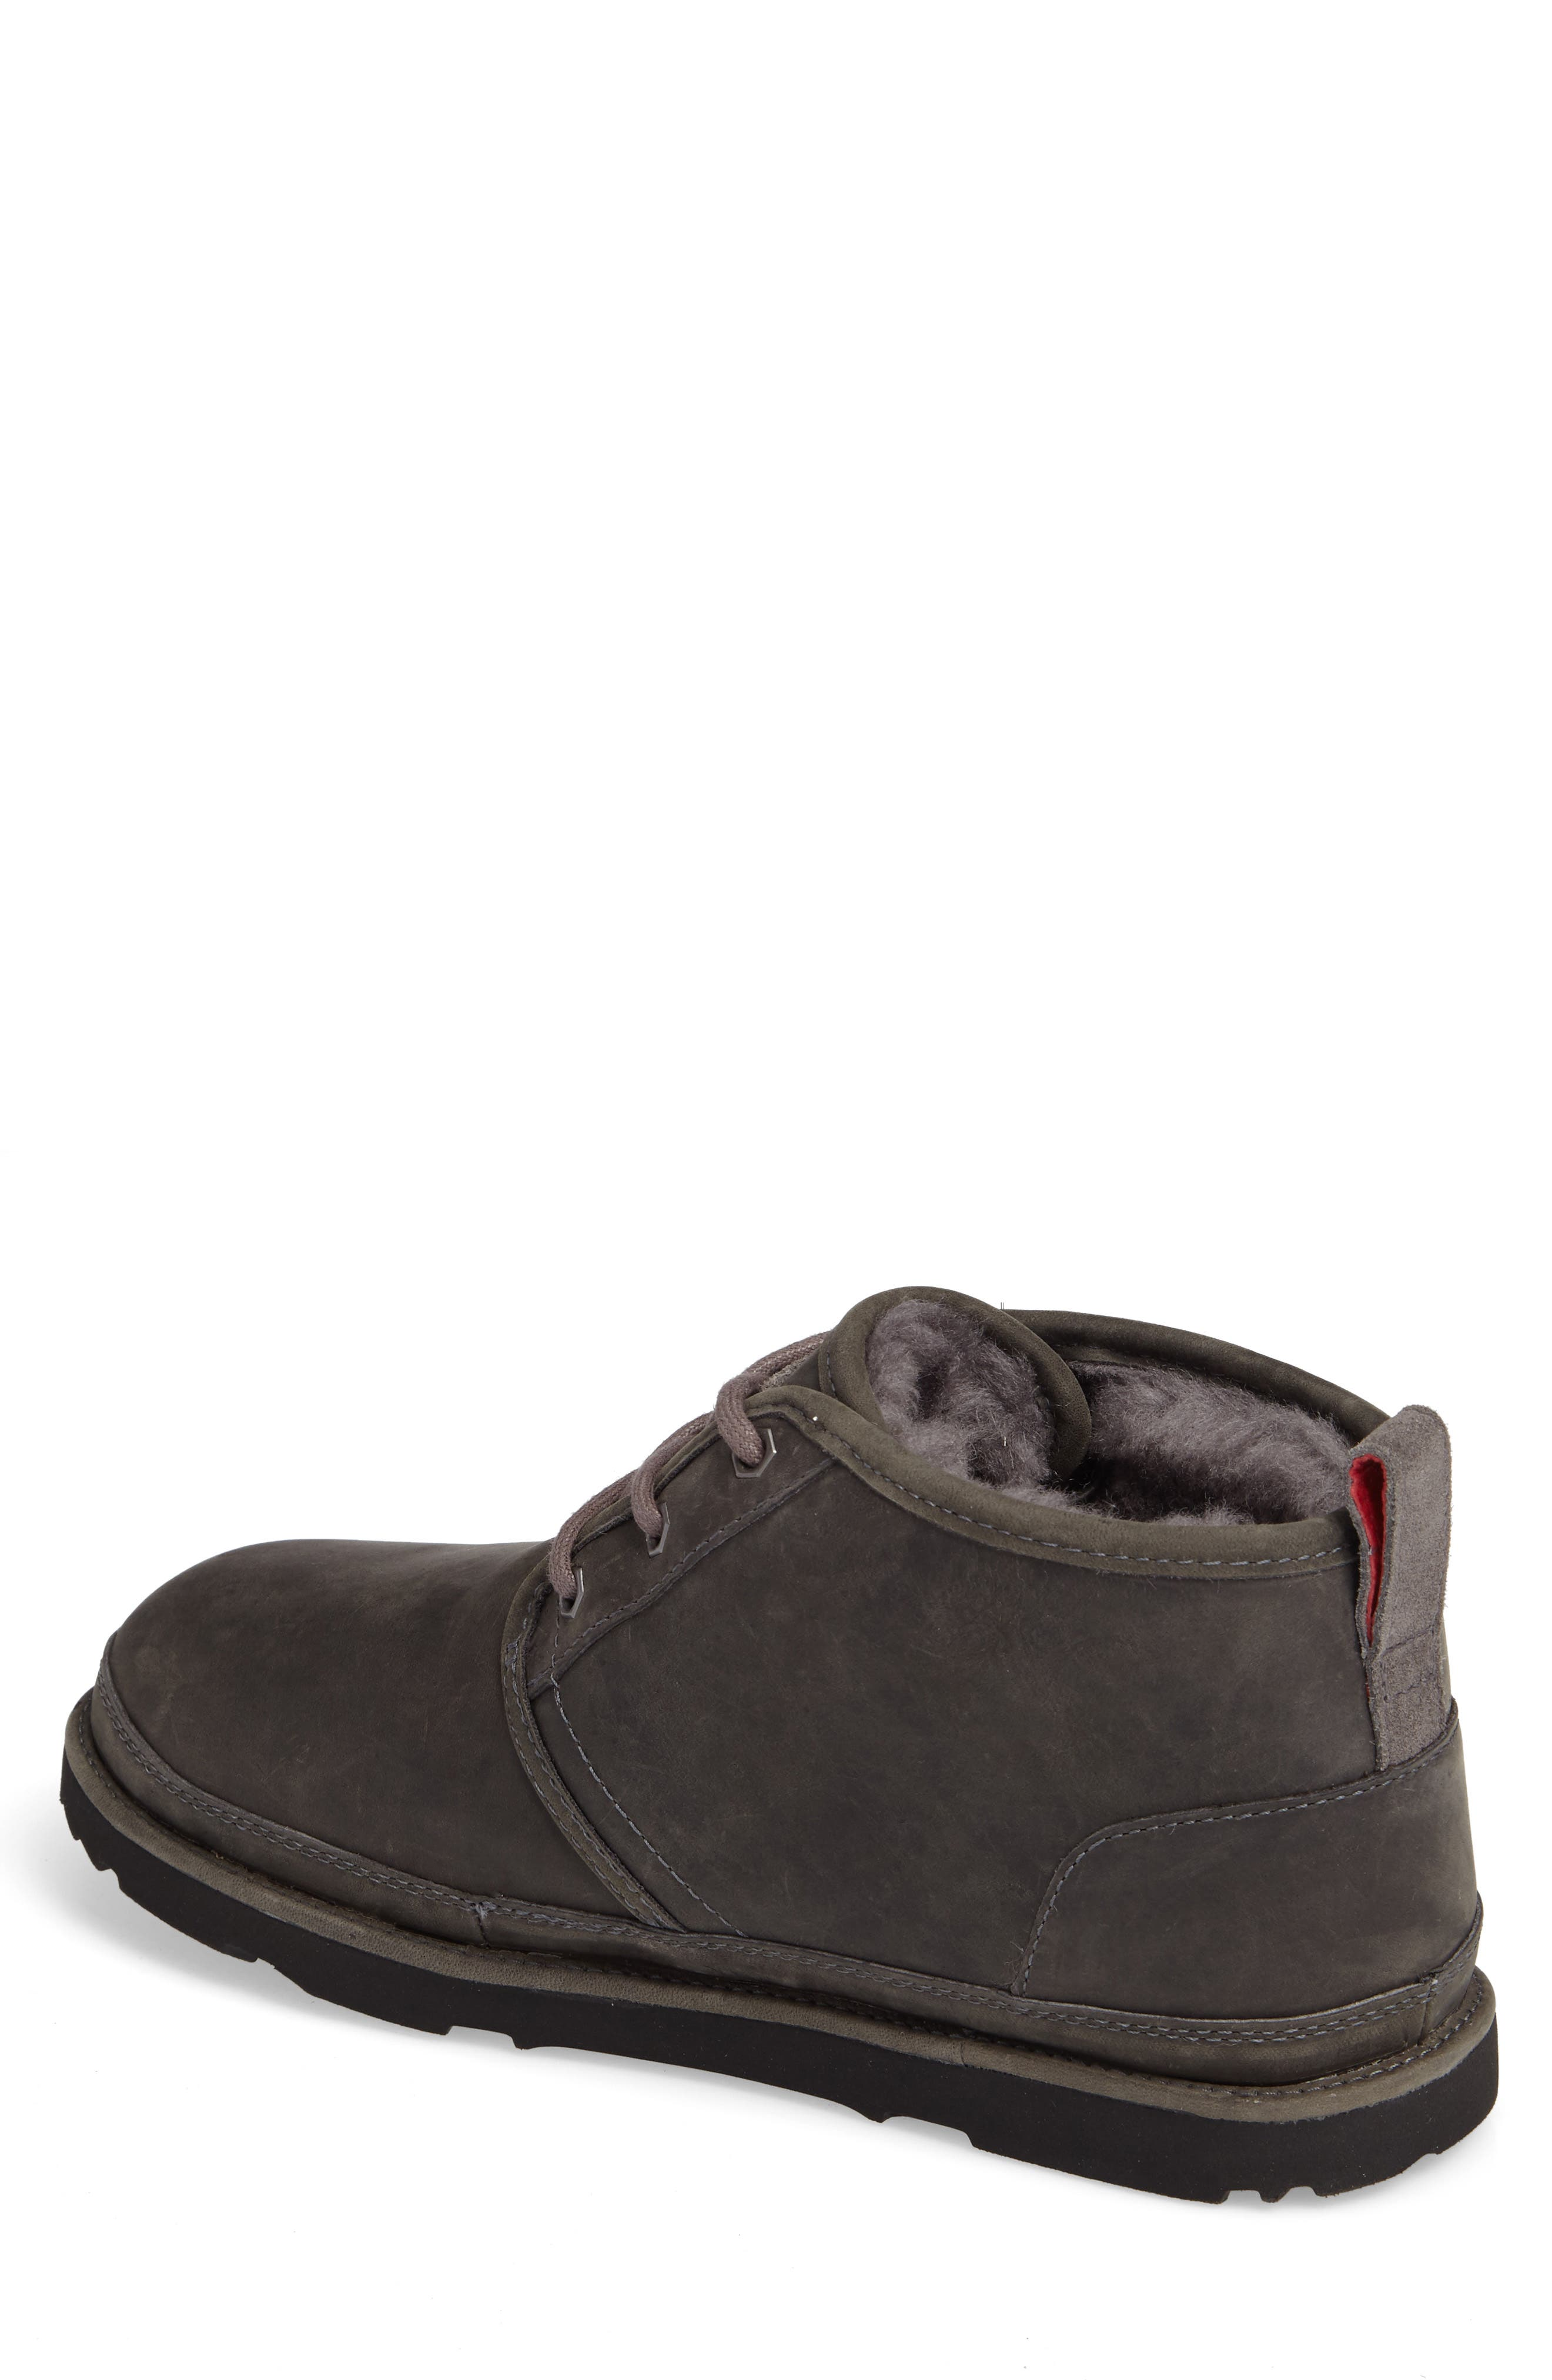 Neumel Waterproof Chukka Boot,                             Alternate thumbnail 2, color,                             Charcoal